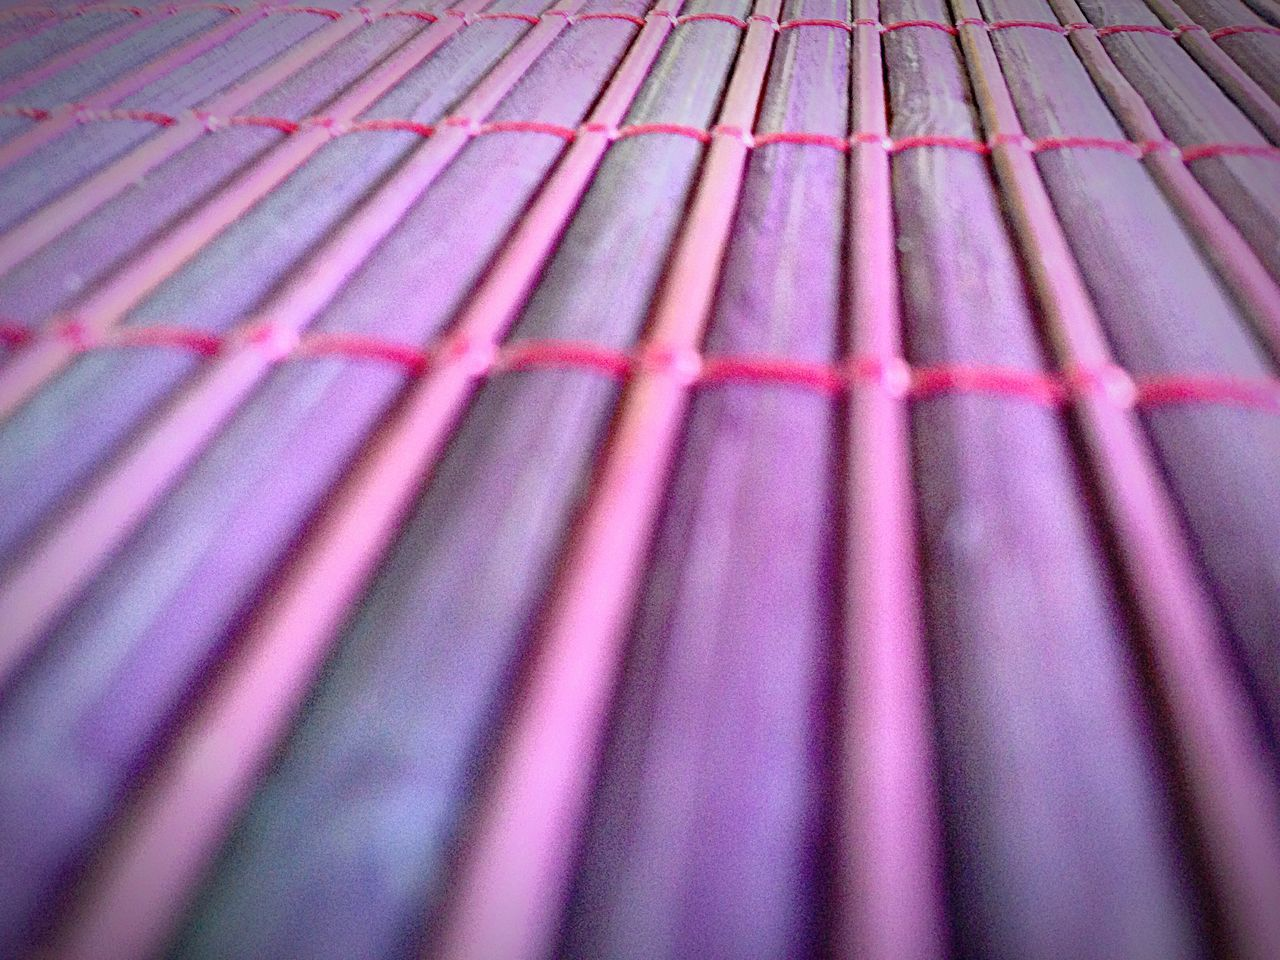 backgrounds, full frame, pink color, no people, pattern, close-up, day, outdoors